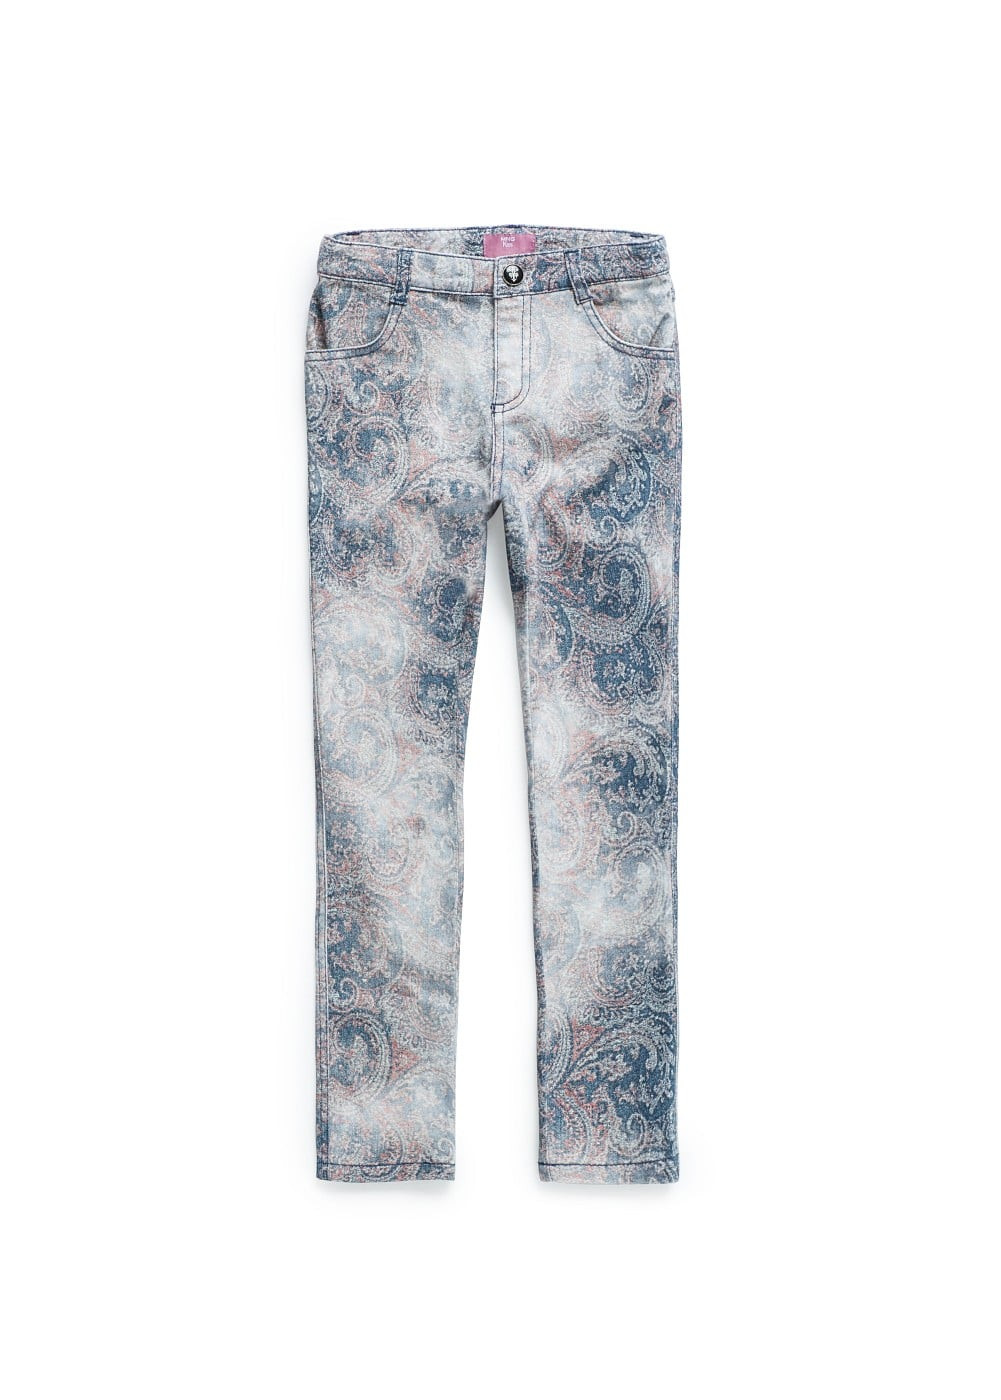 Pantalón denim estampado paisley